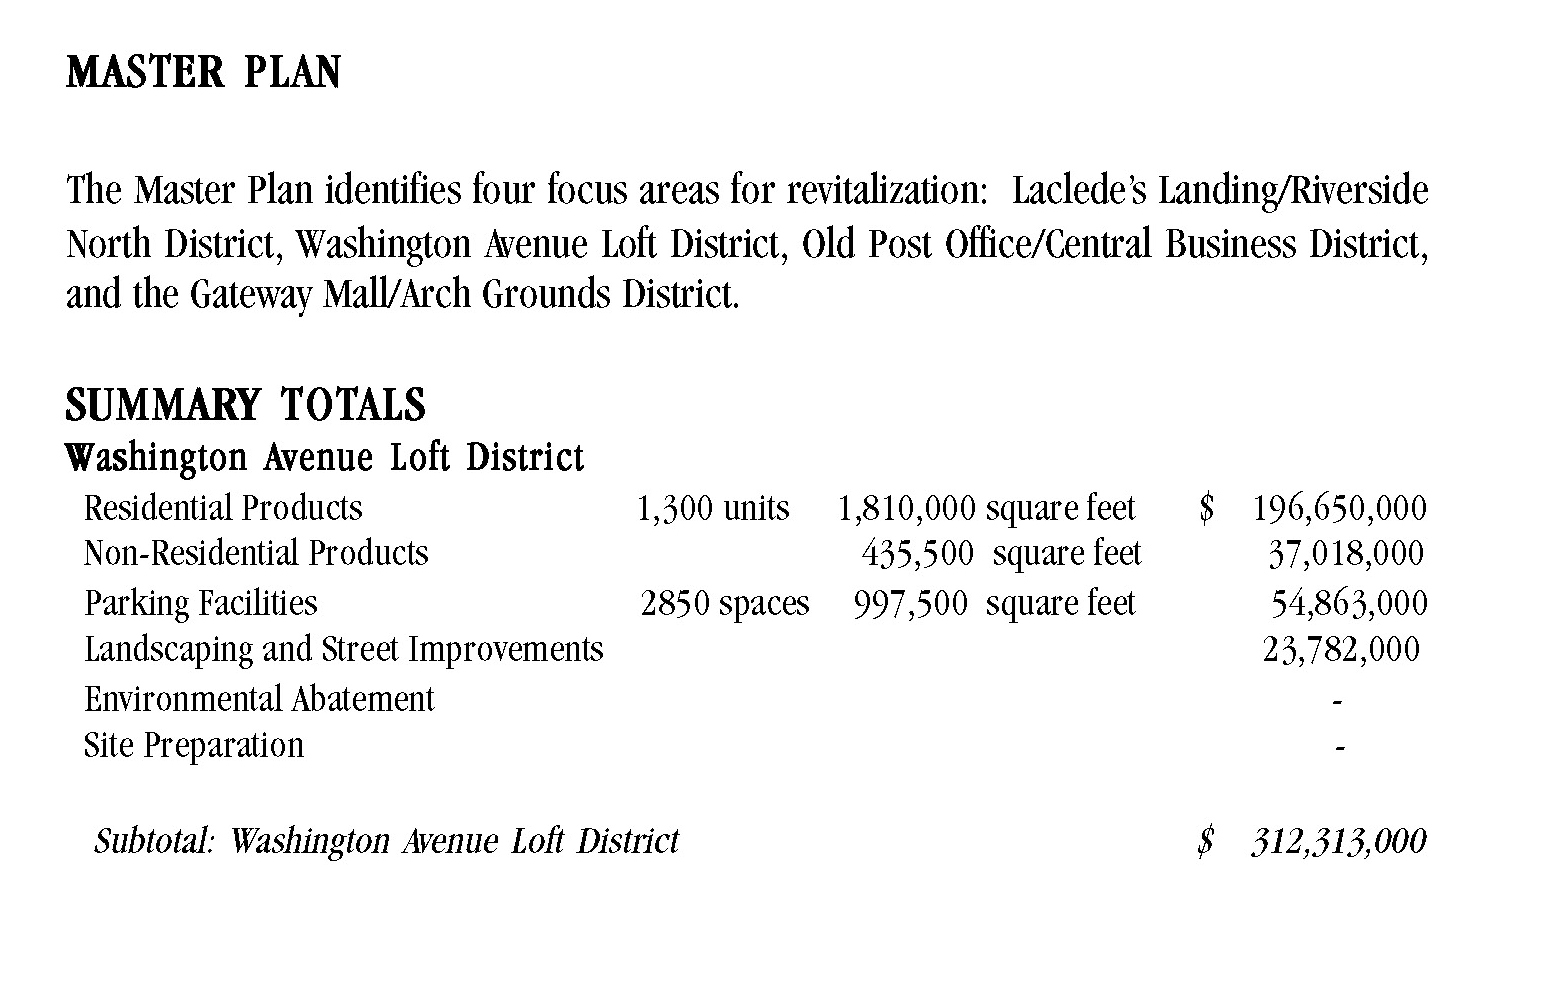 Another push for the ideas of the Washington Avenue Plan was the creation of a funding strategy from private and public sources to implement the design, especially of the public realm.  Source:  www.StLouis-MO.gov